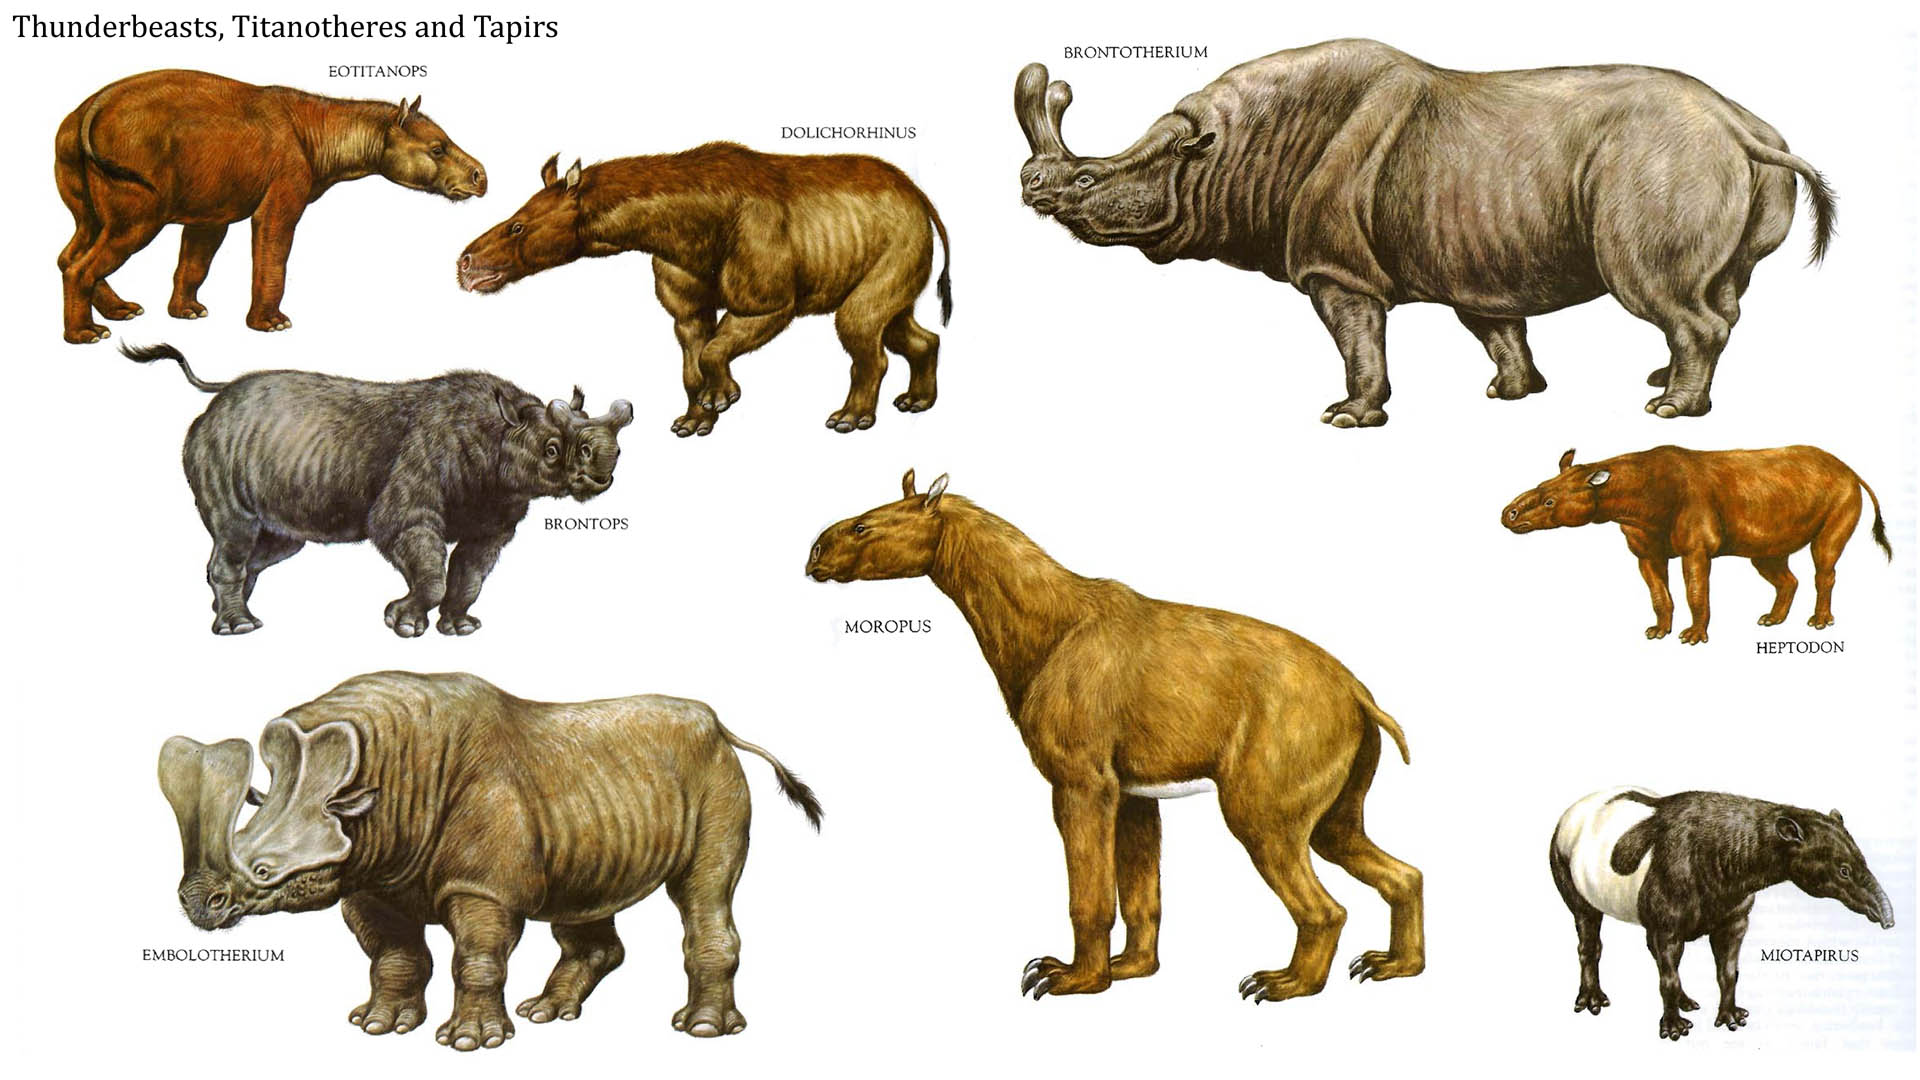 Thunder Beasts Titanotheres And Tapirs